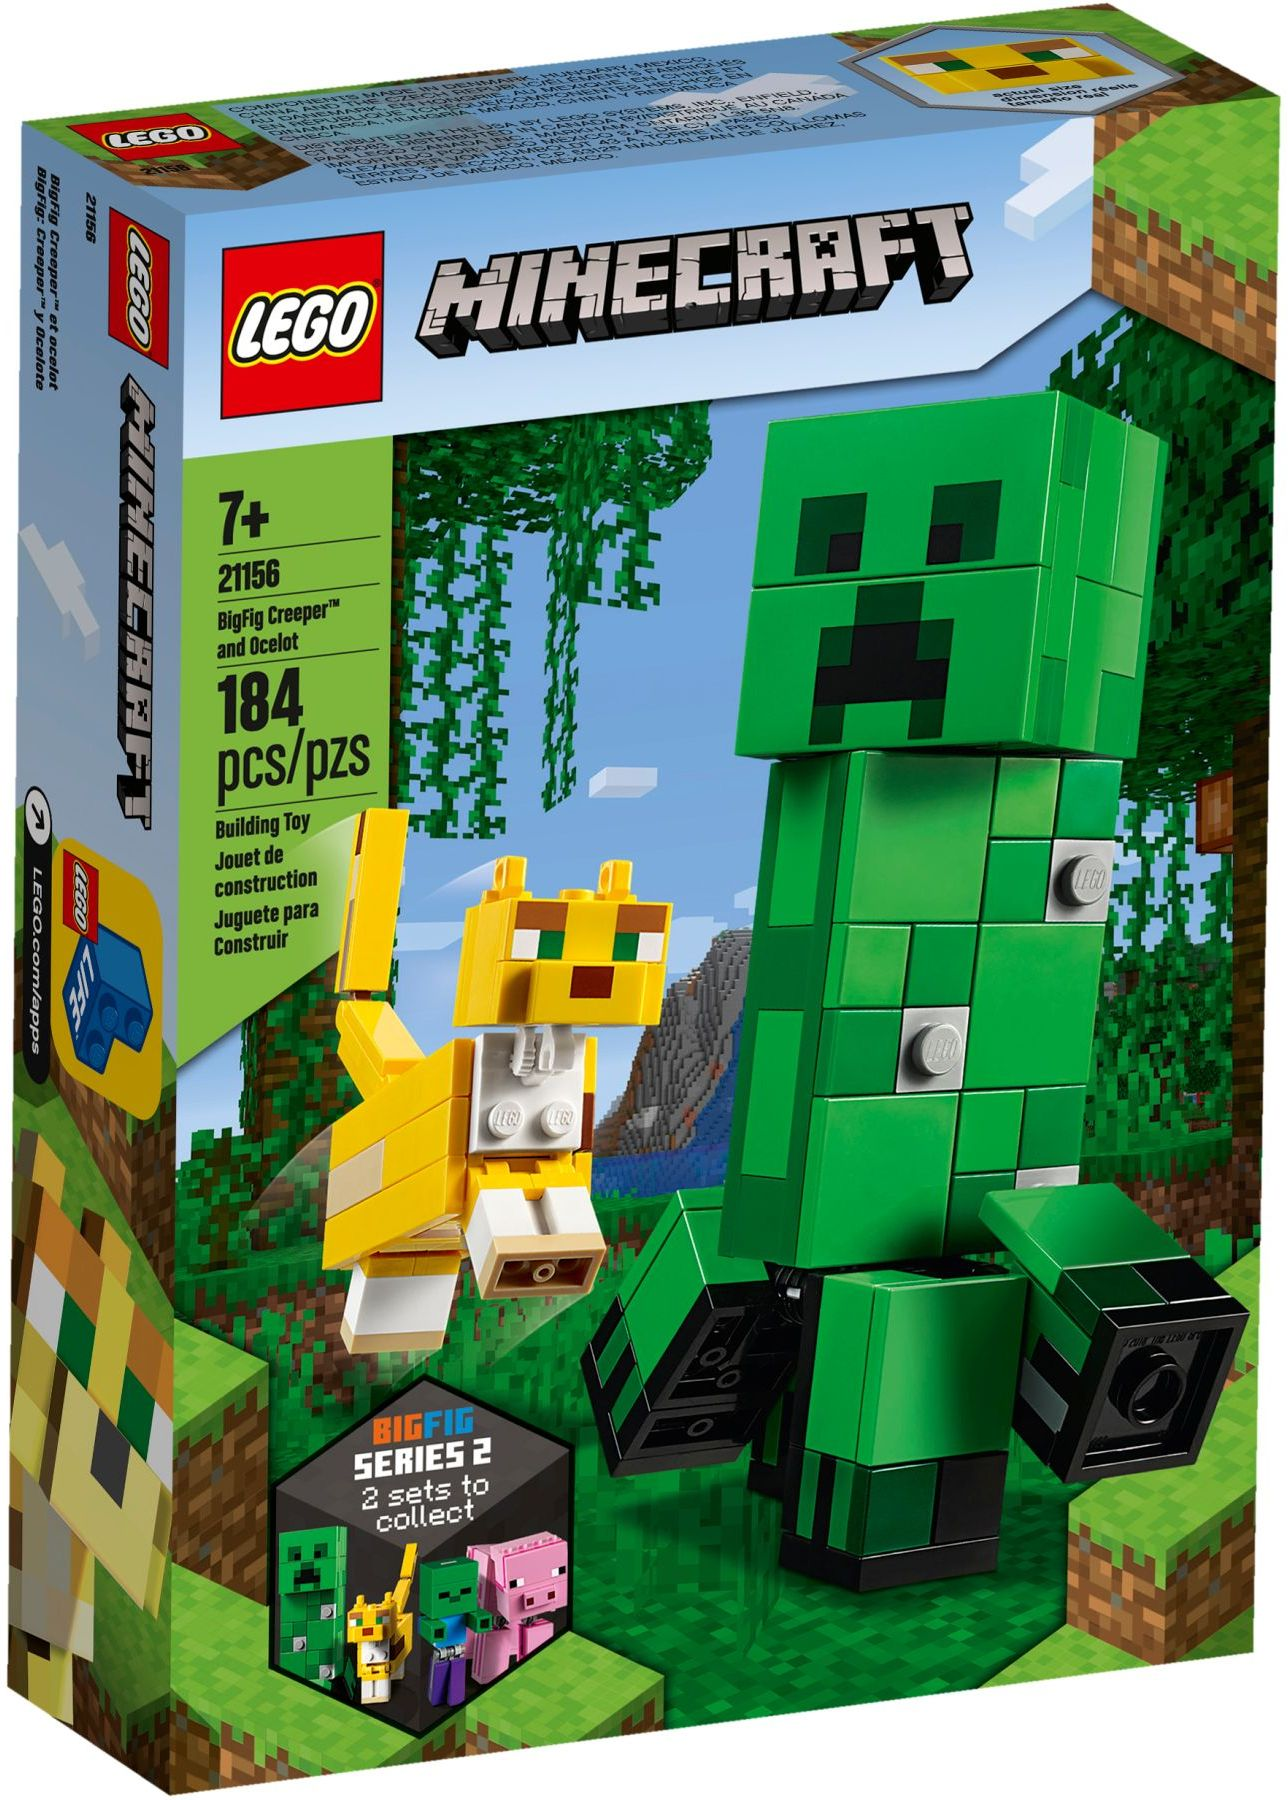 21156 BigFig Creeper and Ocelot